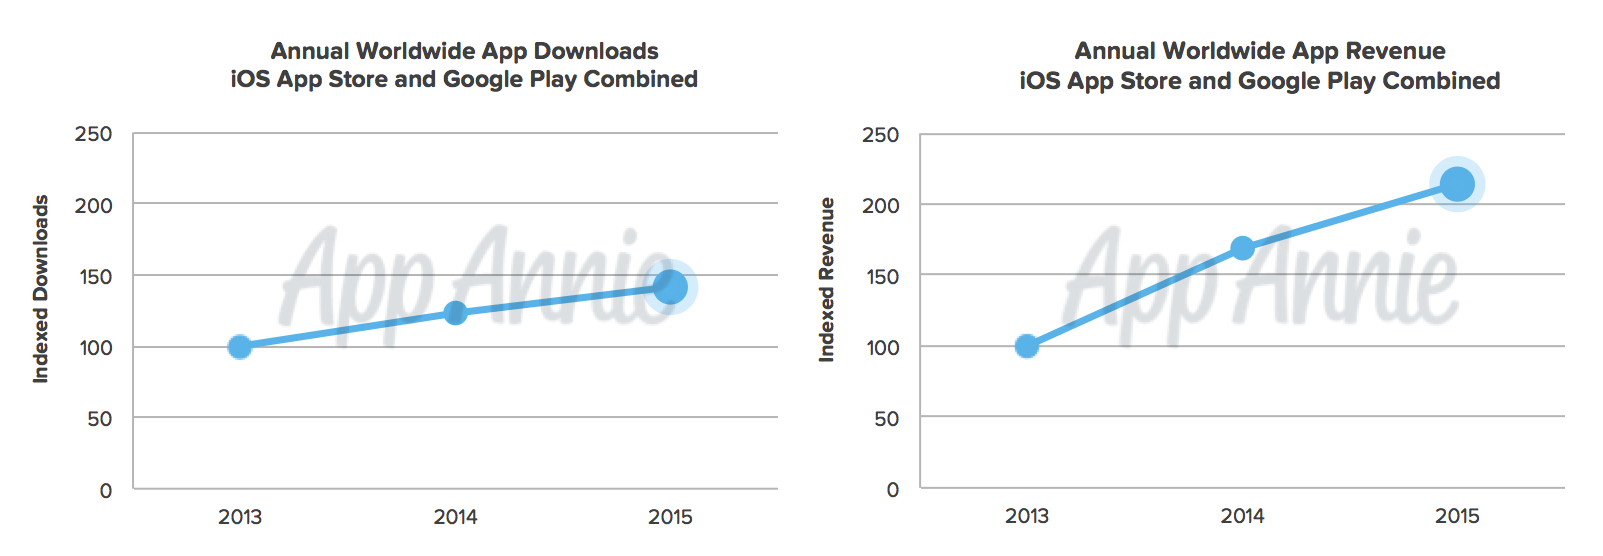 1453475199_01-2015-revenue-and-downloads-ios-and-google-play-combined.png